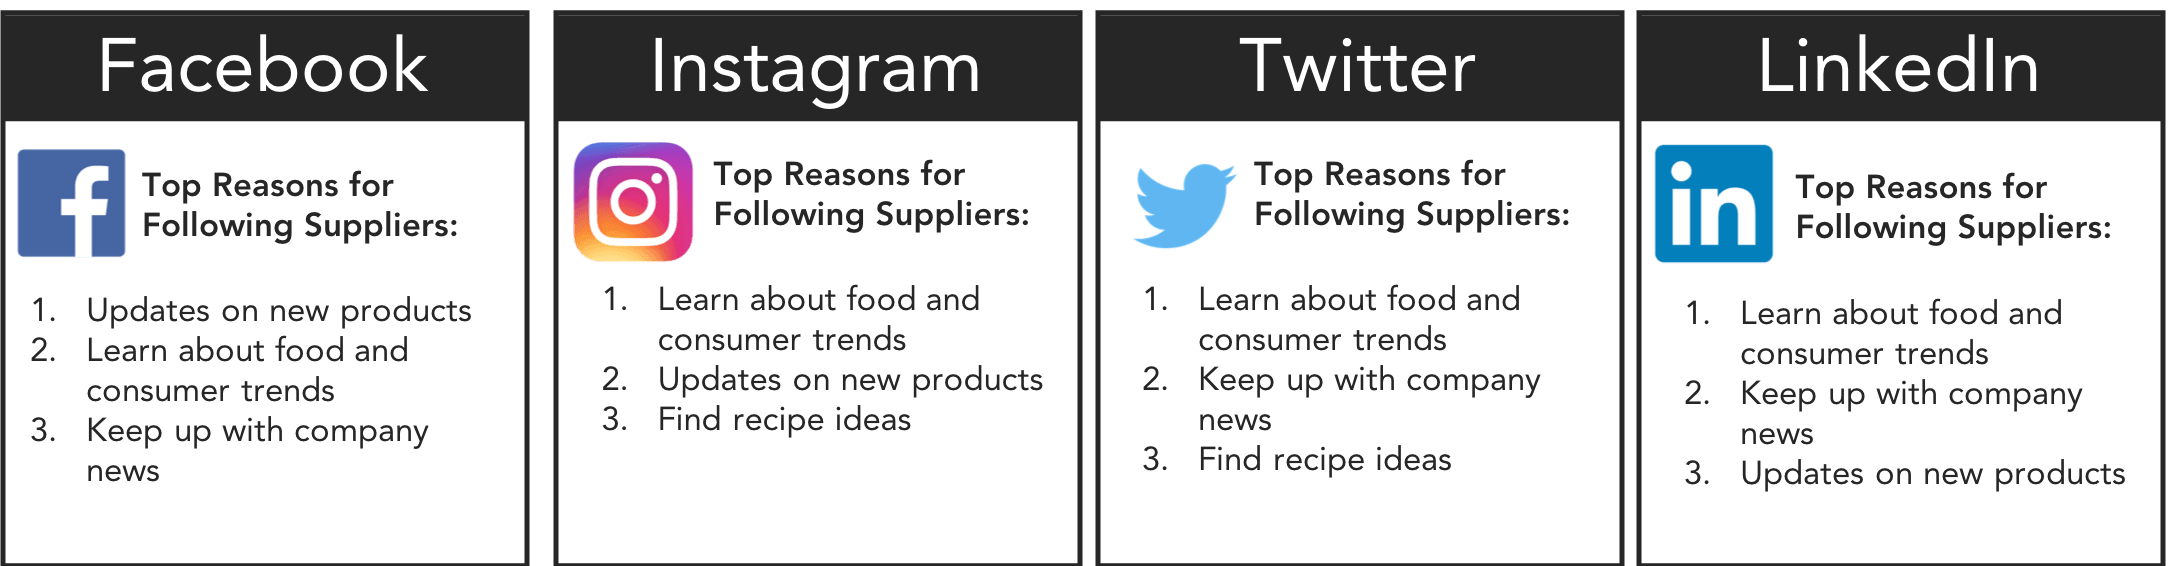 Food and consumer trends, new product updates and company news were frequently sought after by all operators on various social channels.